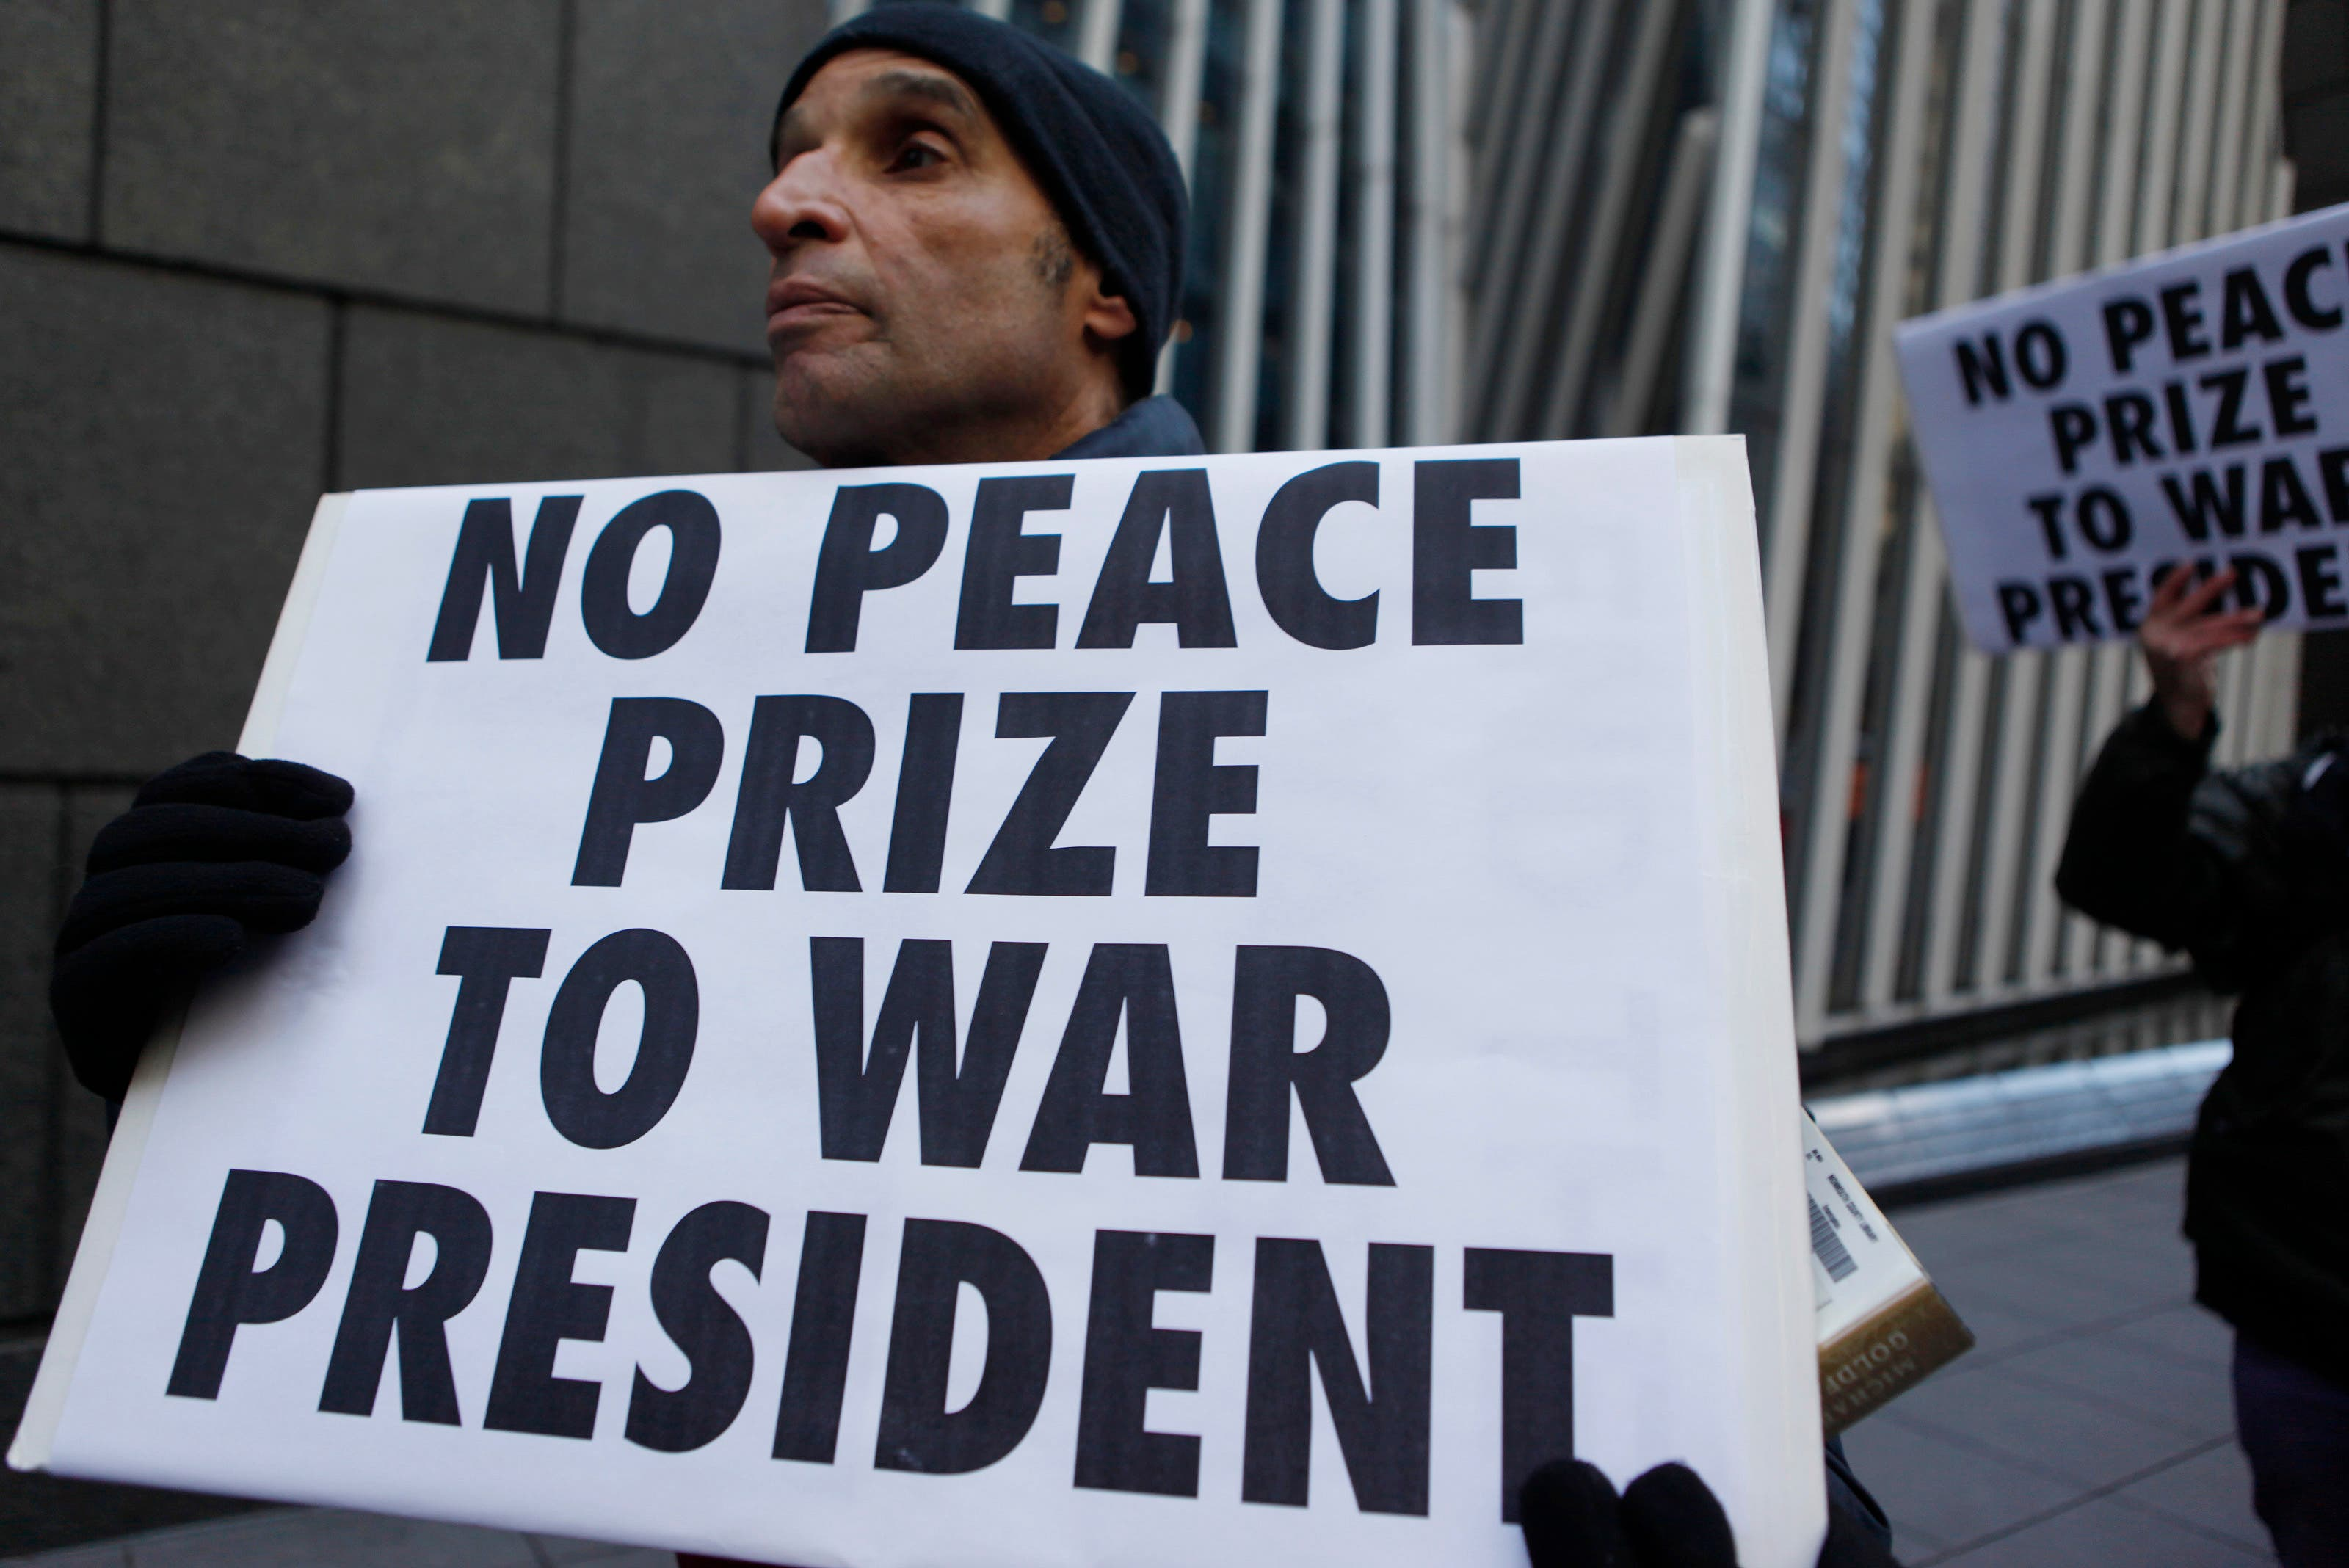 Protesters also marched through Manhattan over the Nobel Peace Prize and the war in Afghanistan, pictured in Dec. 2009. (File photo: Reuters)